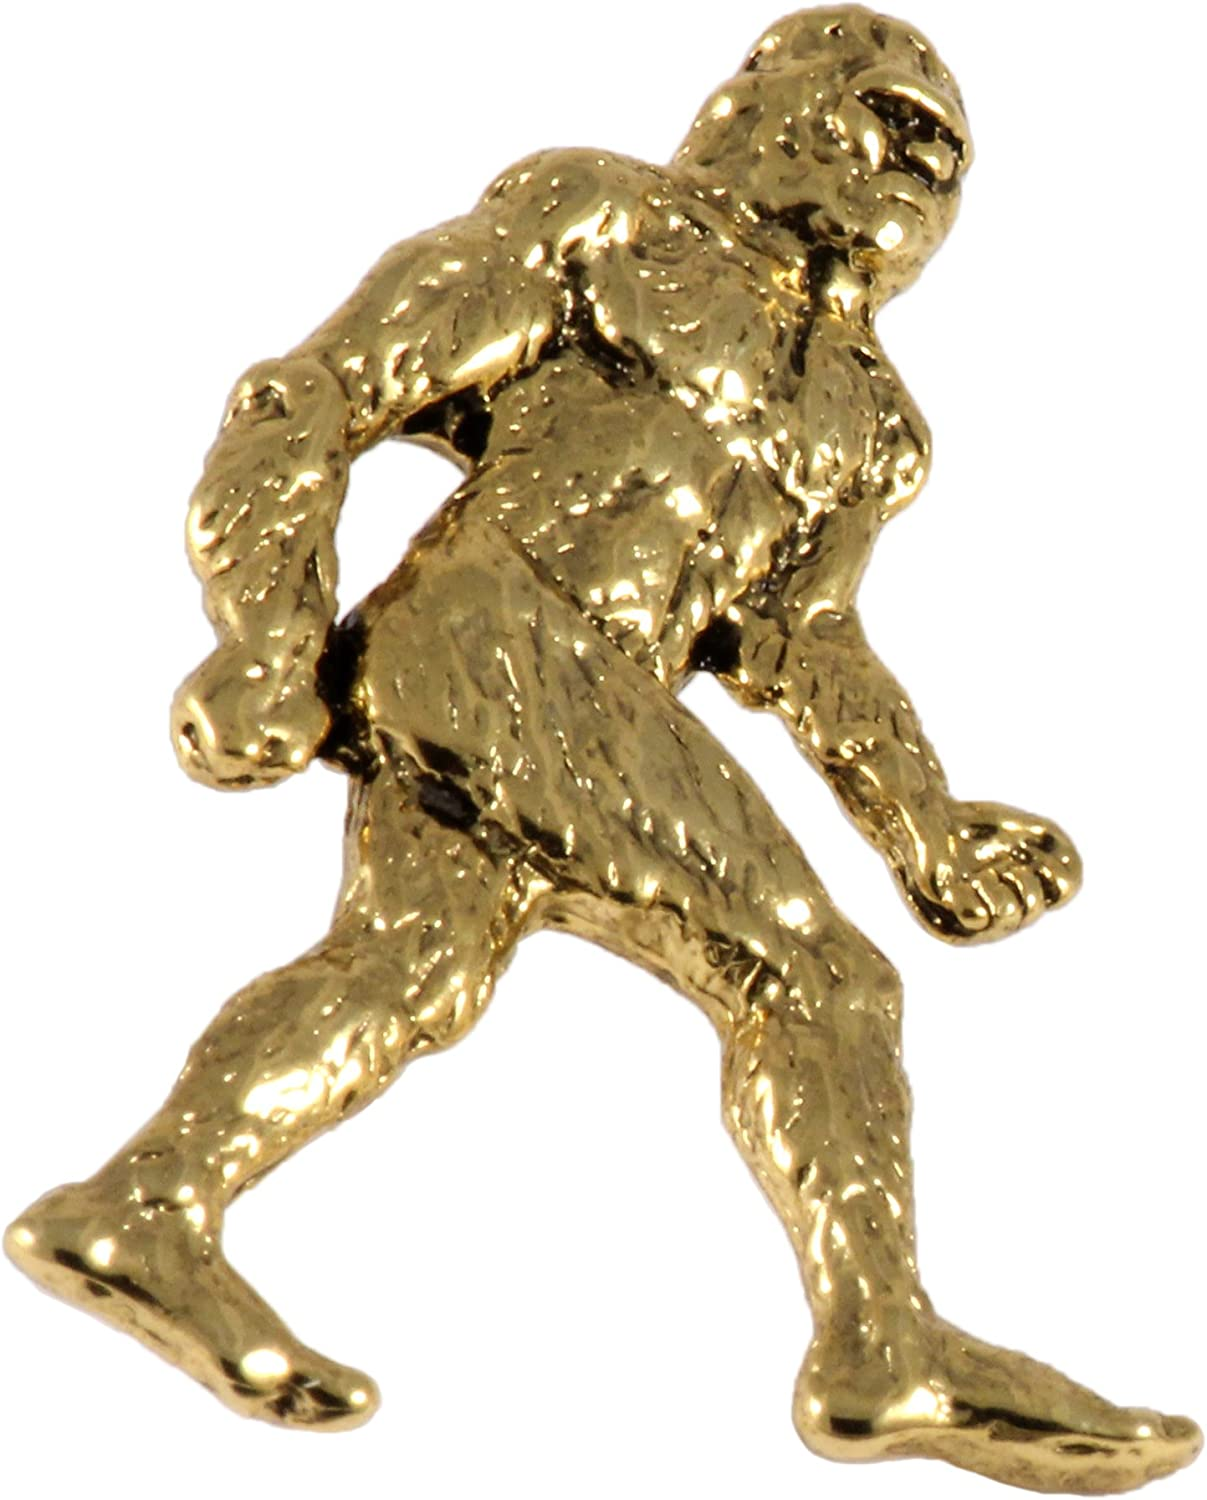 Handcrafted Sasquatch Bigfoot Brooch and Ful Max 61% OFF Pins Head Max 89% OFF - Lapel